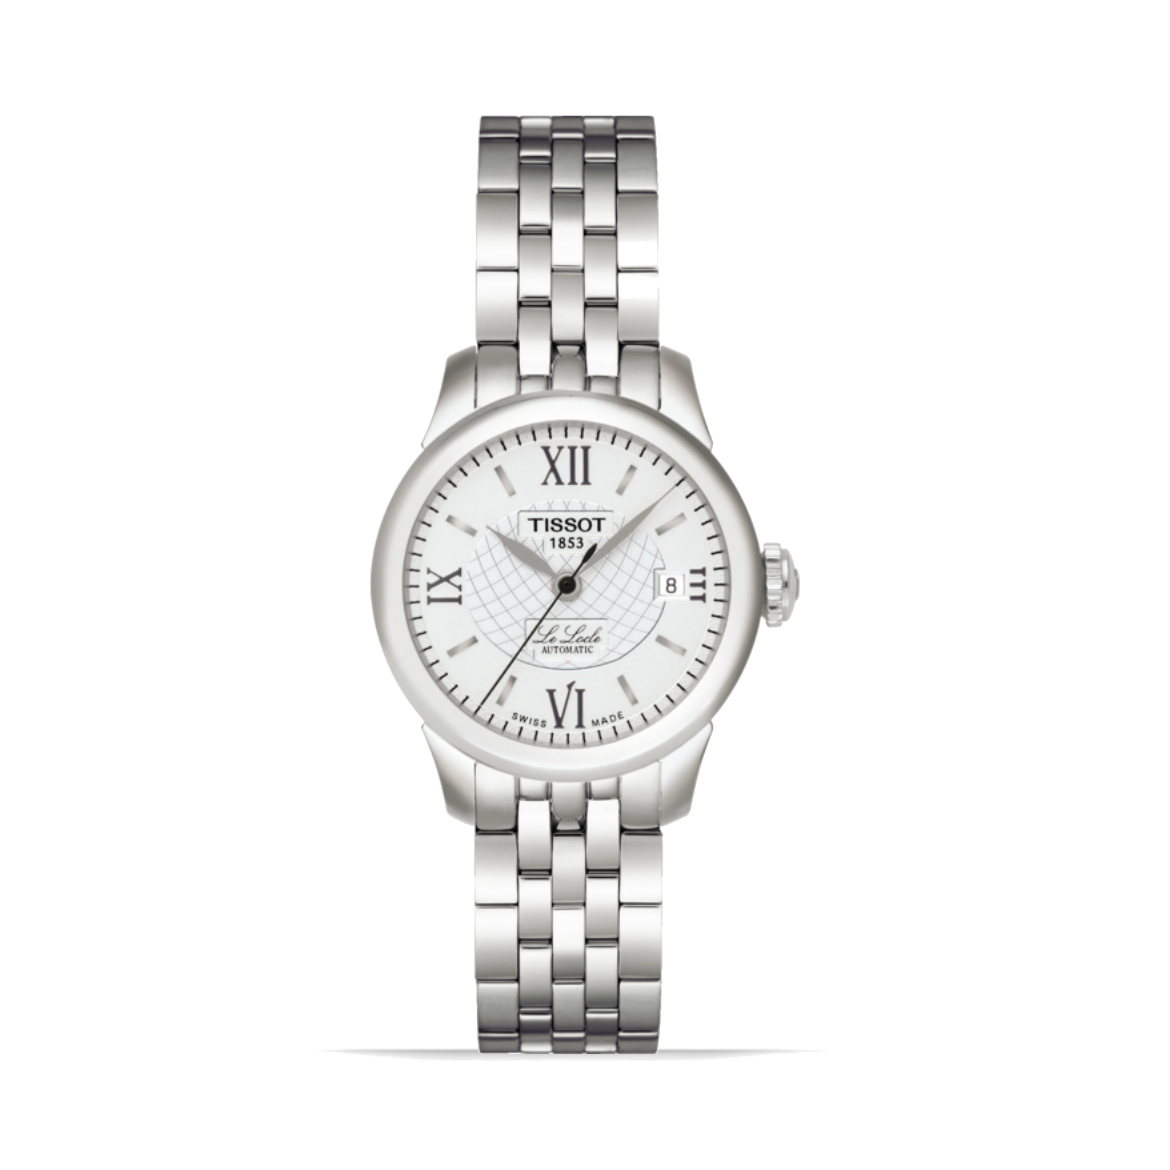 Tissot Le Locle Automatic Lady image